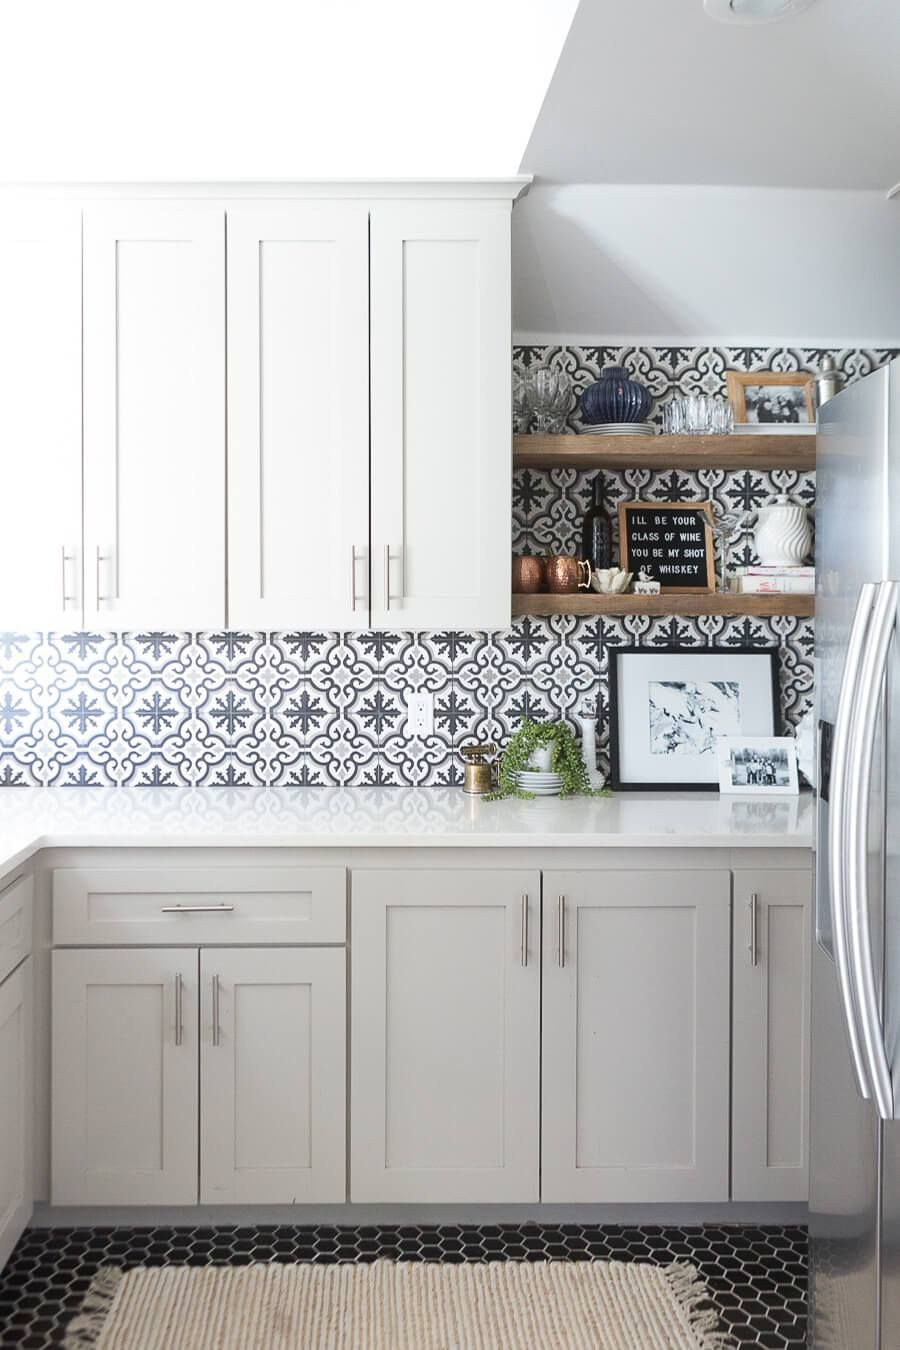 Kitchen Tile Backsplash Ideas.11 Kitchen Tile Backsplash Ideas For White Cabinets That